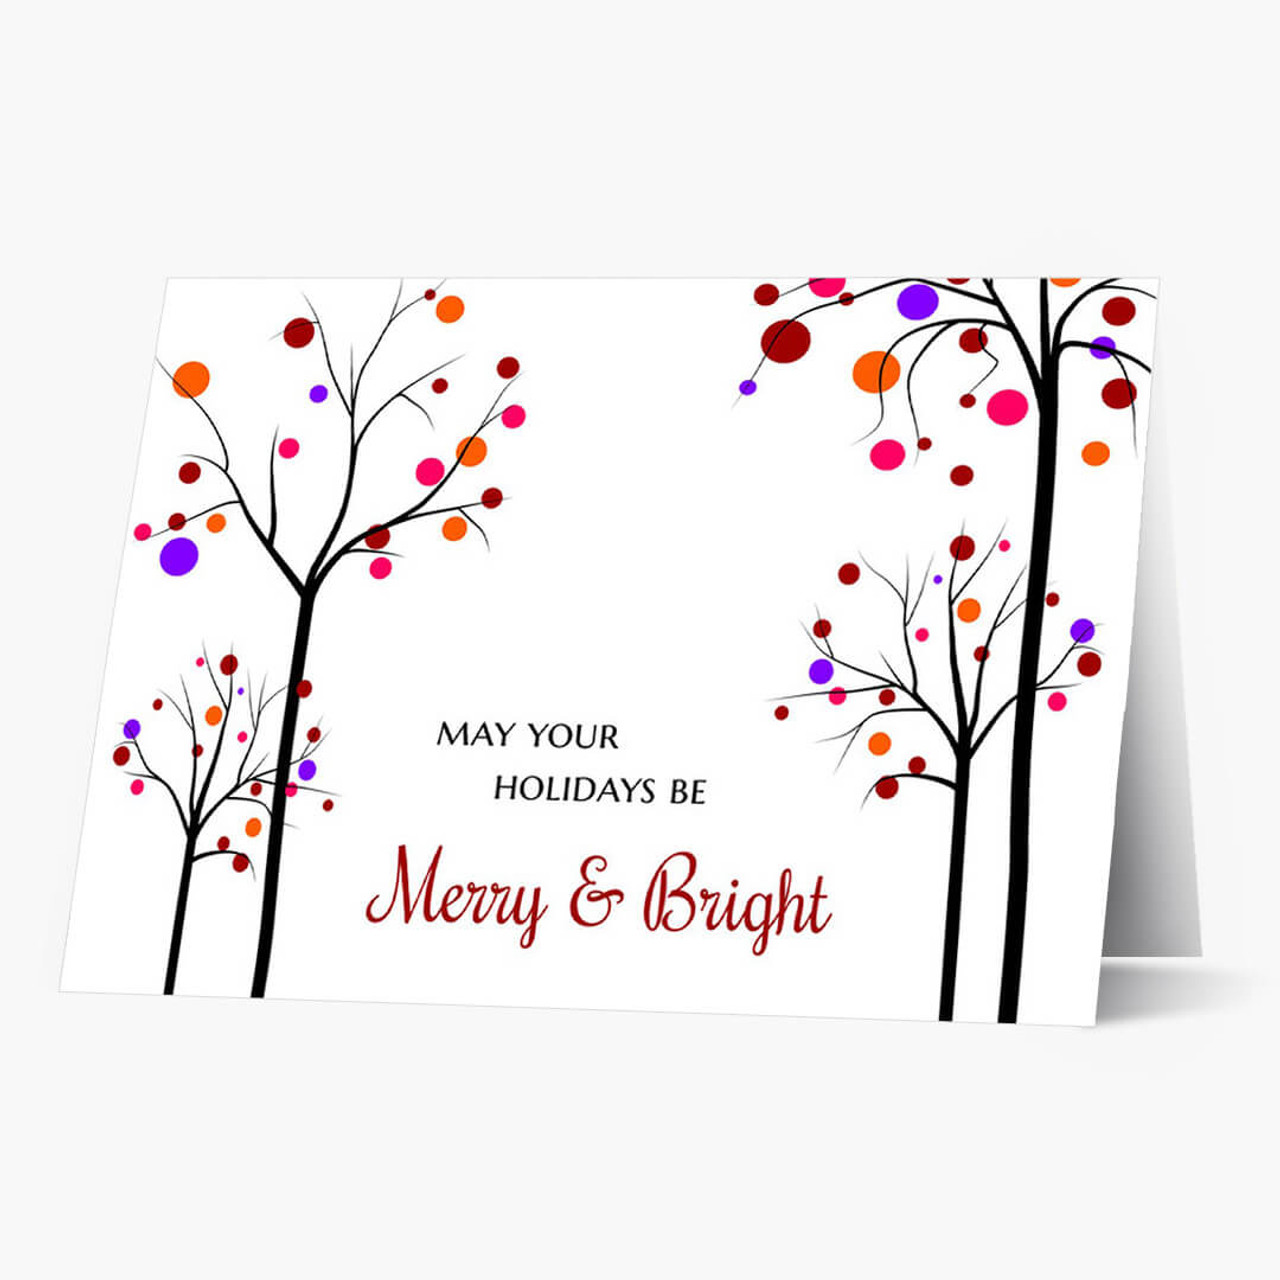 Merry and Bright Christmas Card